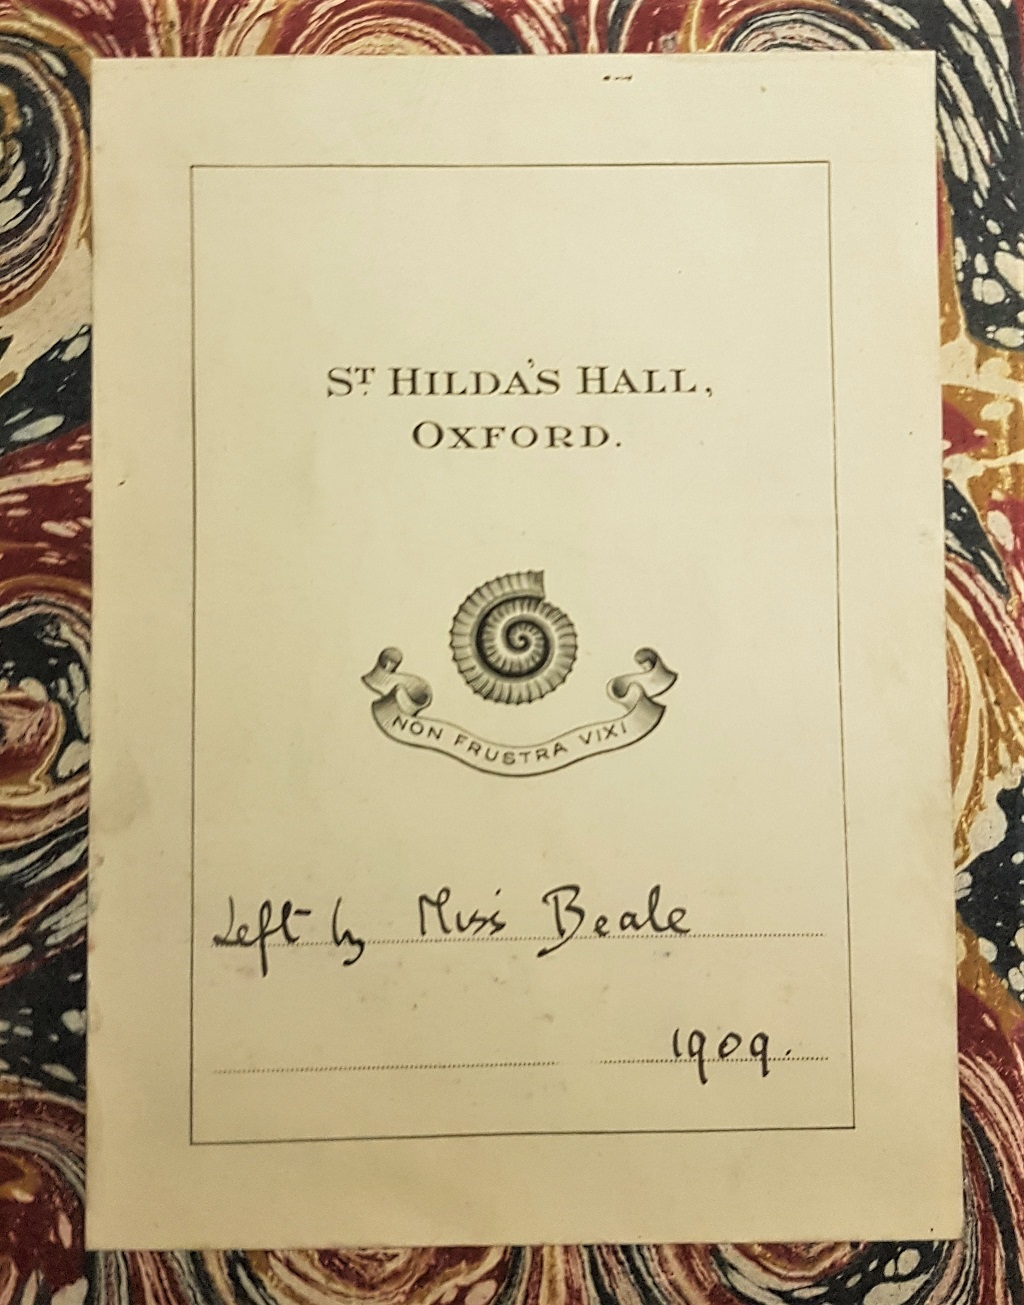 Book plate of the oldest printed book in St Hilda's special collections